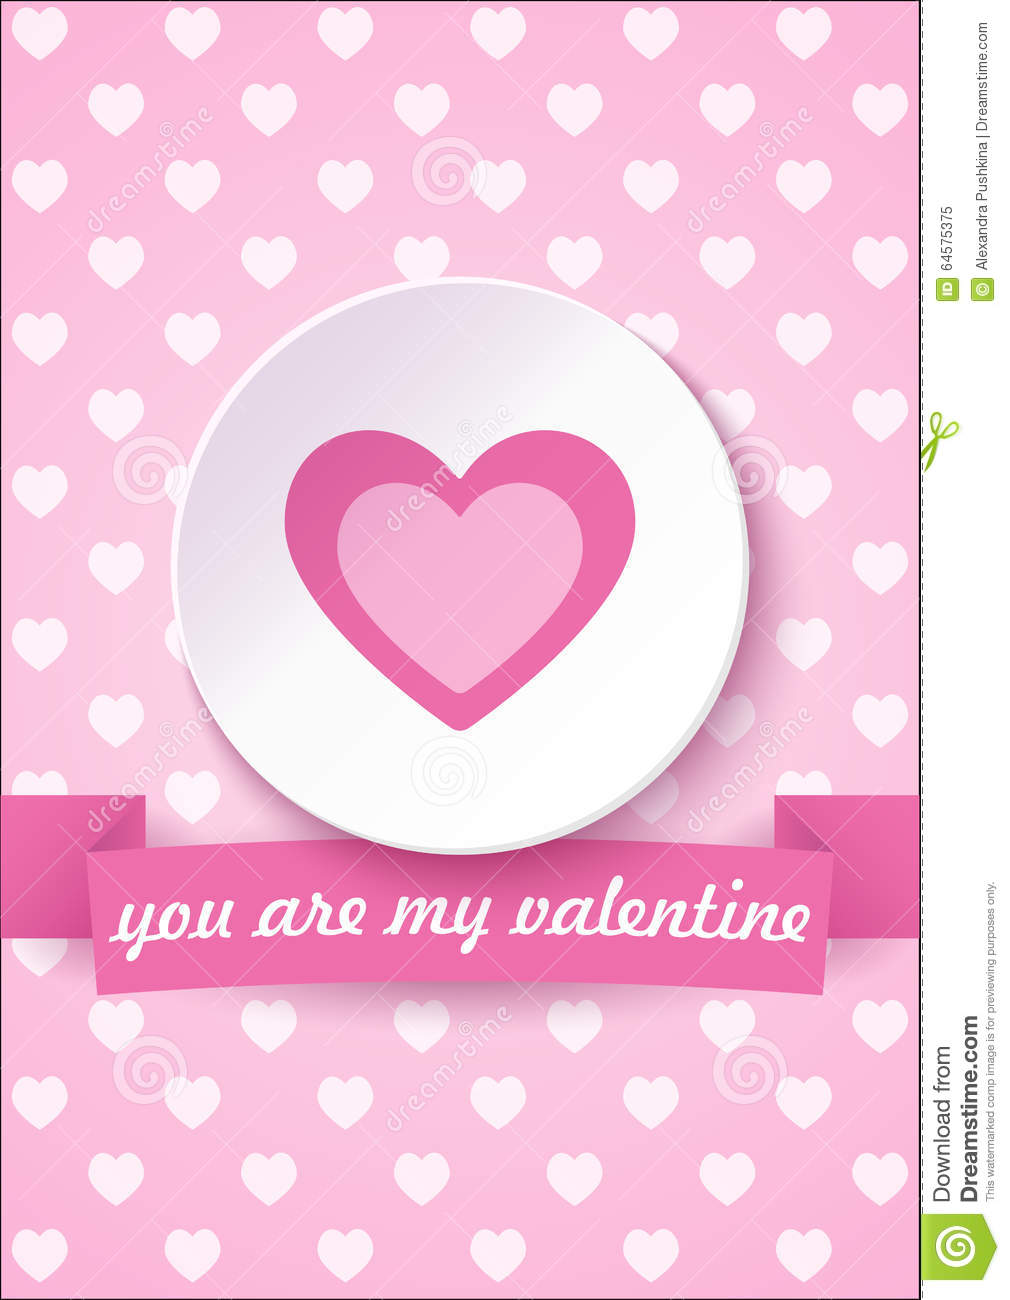 Valentine S Day Card On A Pink Background With You Are My Valentine Text.  Vector Illustration